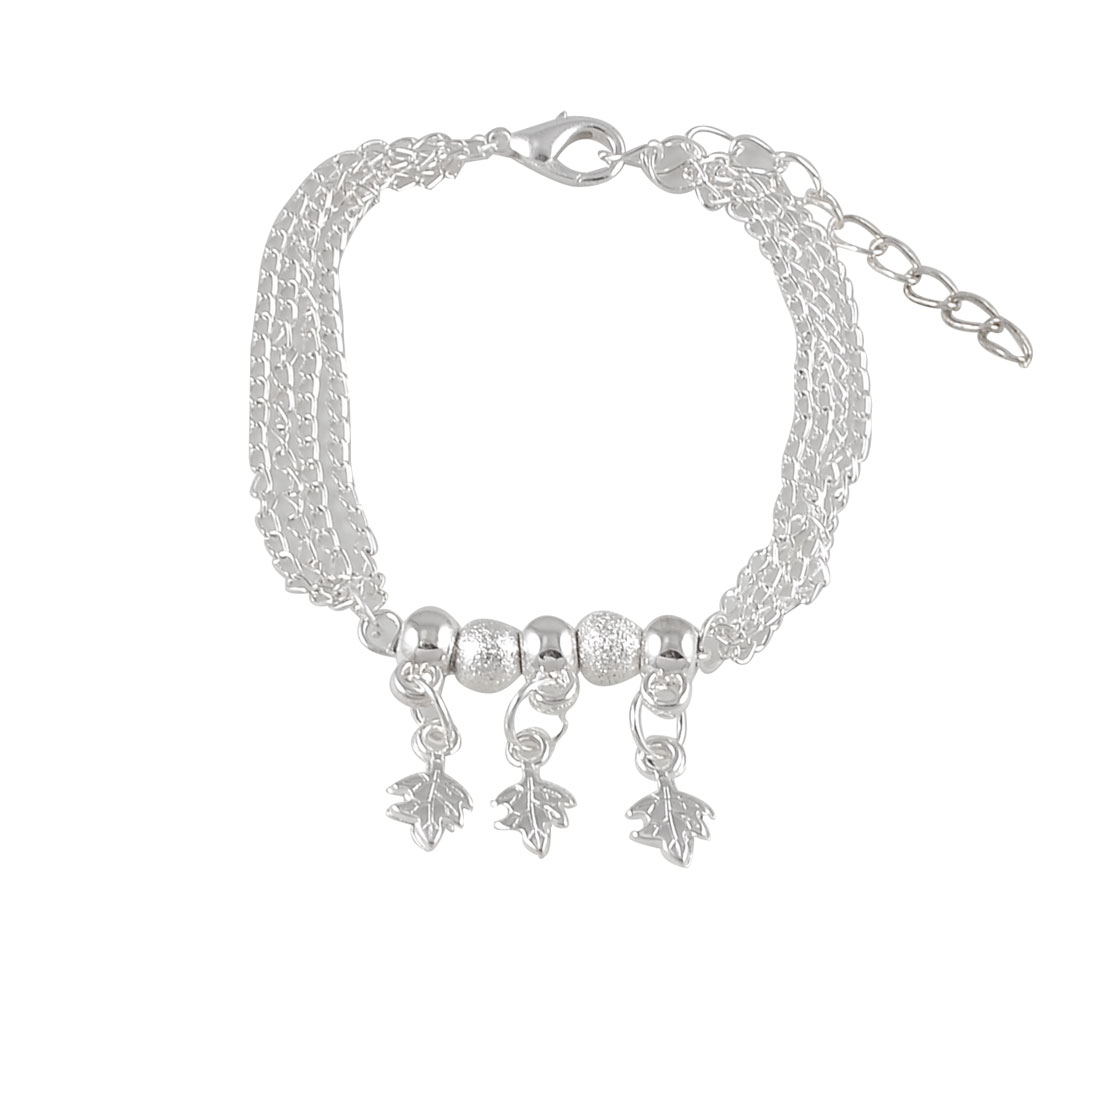 Woman Decorative Metal Leaves Five Beads Bracelet Chain Wrist Ornament Silver Tone